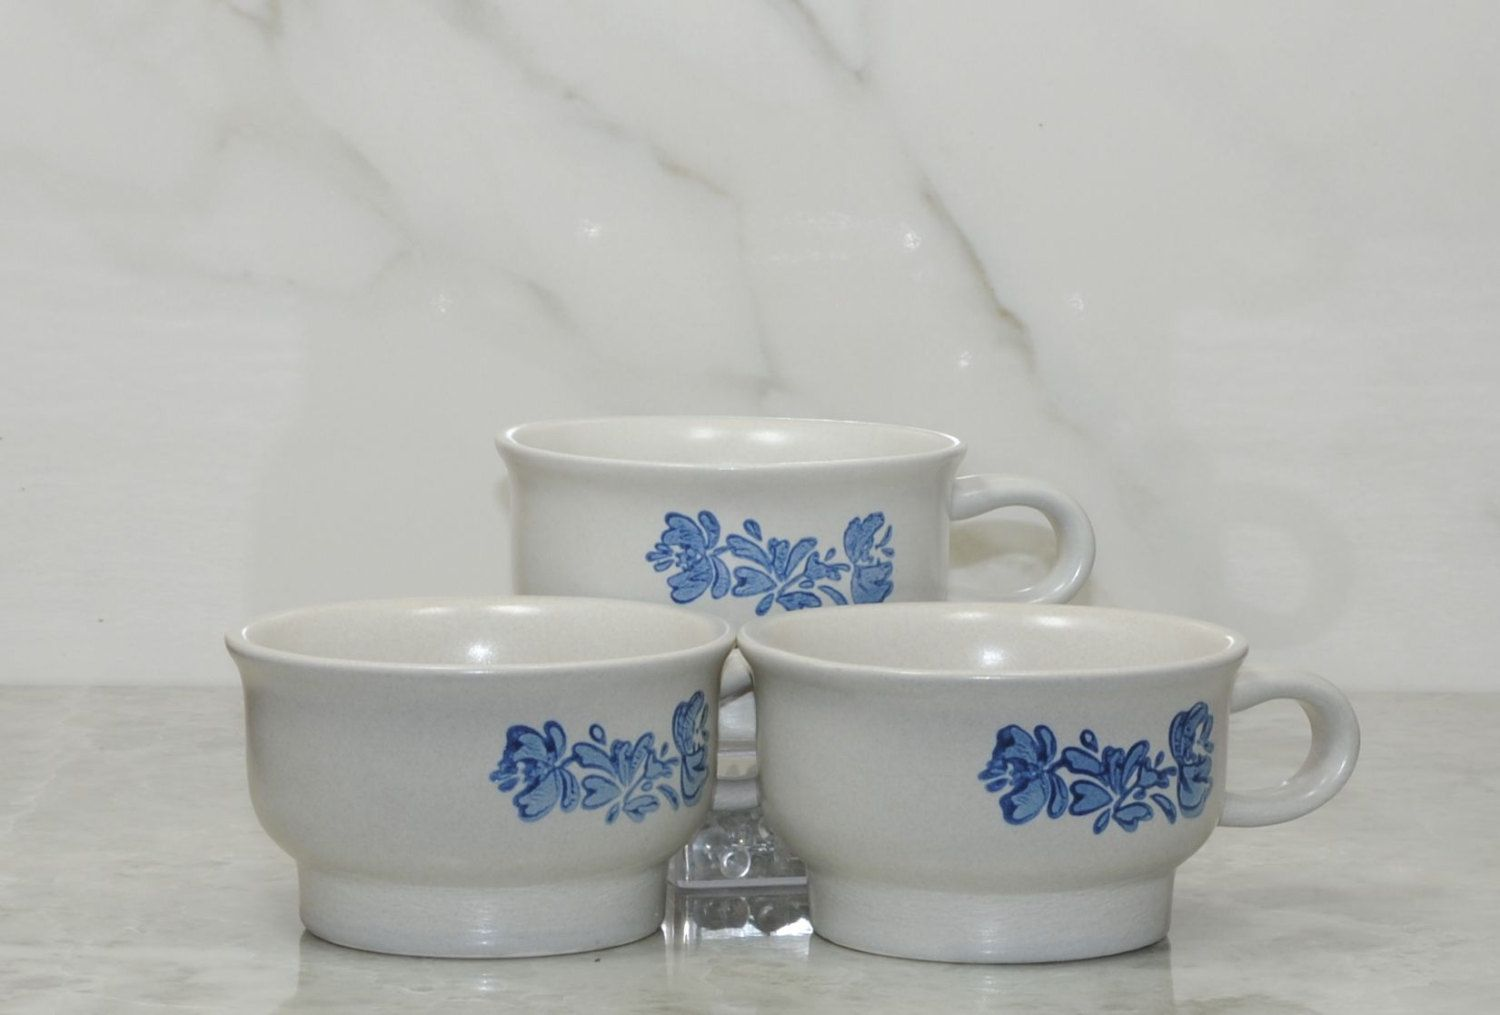 Vintage Pfaltzgraff YORKTOWNE Coffee Mugs,Tea Mugs, Blue on Gray, Stoneware Mug, Set of 3, Soup Bowl, Blue Floral Mug, Sauces, Desert Bowls by winterparkcollect on Etsy